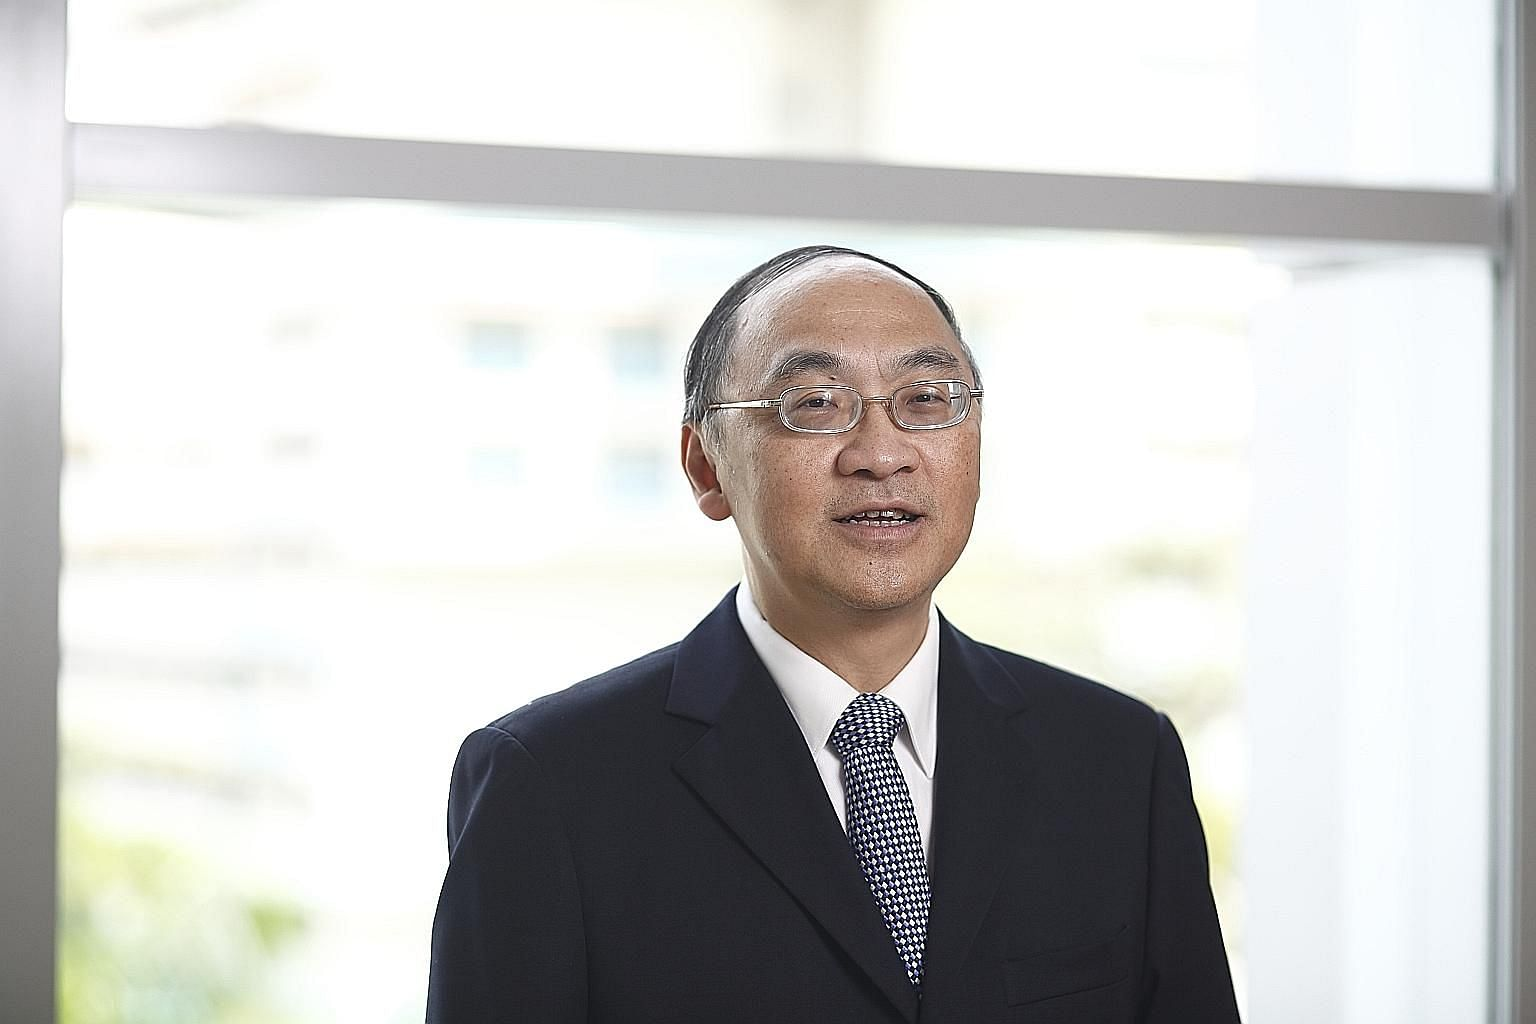 SPH CEO Alan Chan, who will retire on Sept 1, oversaw the expansion of the group's core media business to multiple platforms across print, digital, radio and outdoor. SPH also expanded its property business under his watch.